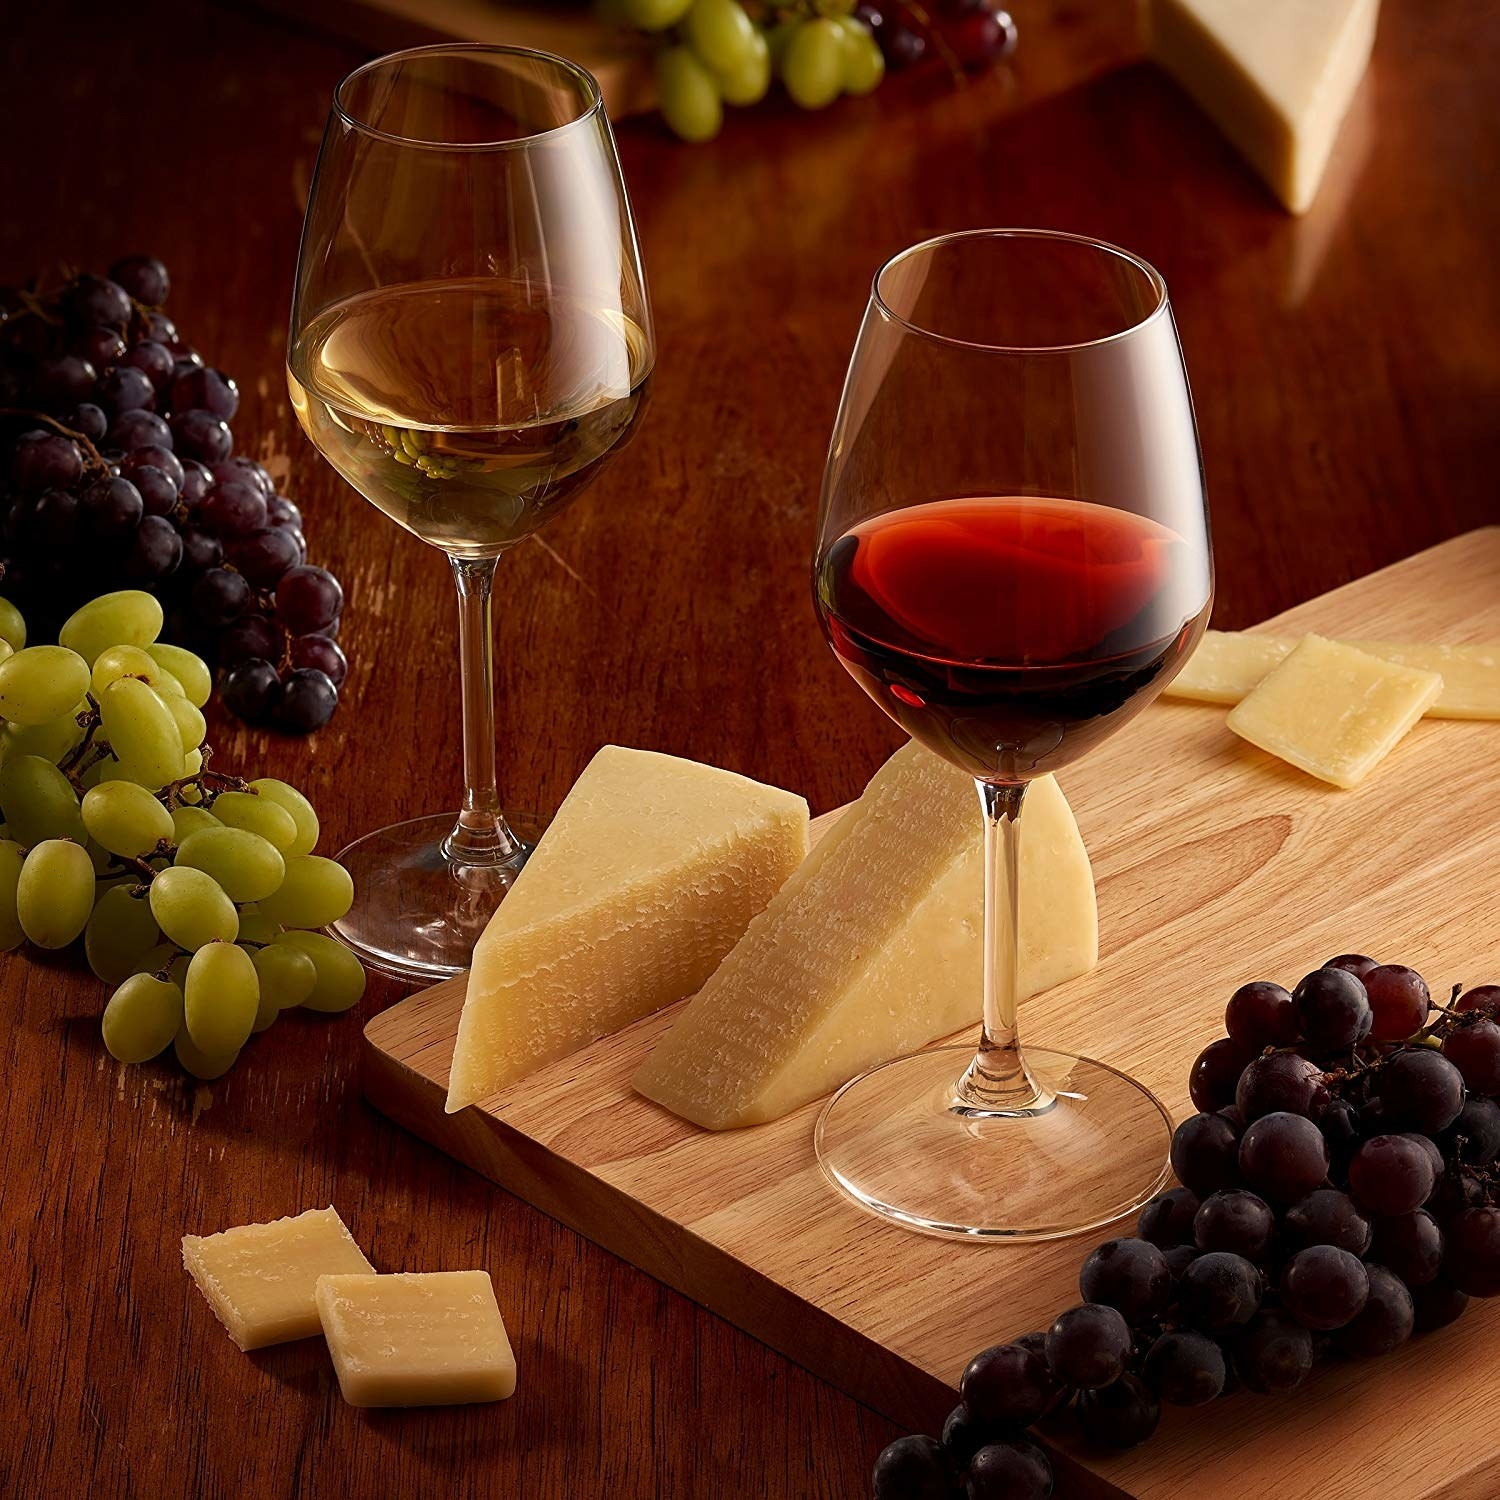 Two glasses of wine next to a board of cheese and grapes